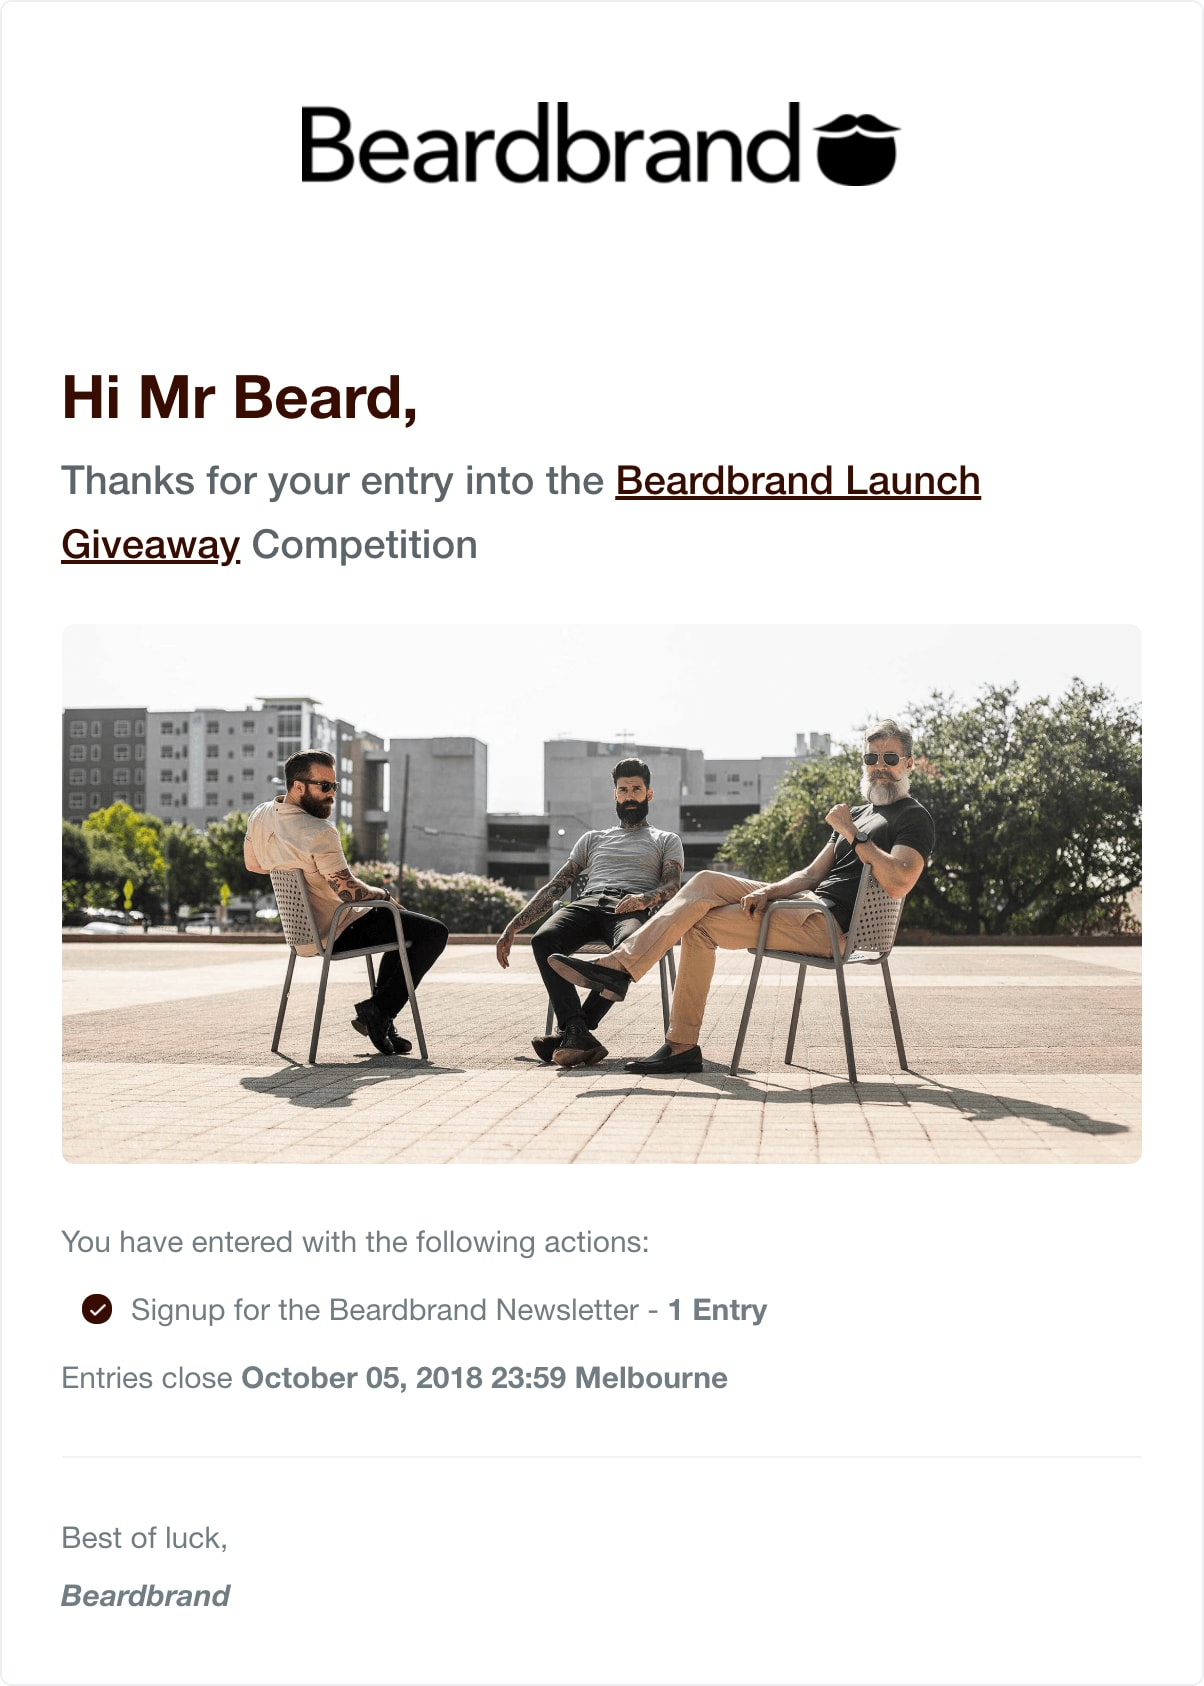 Beardbrand's entry confirmation email sent to entrants